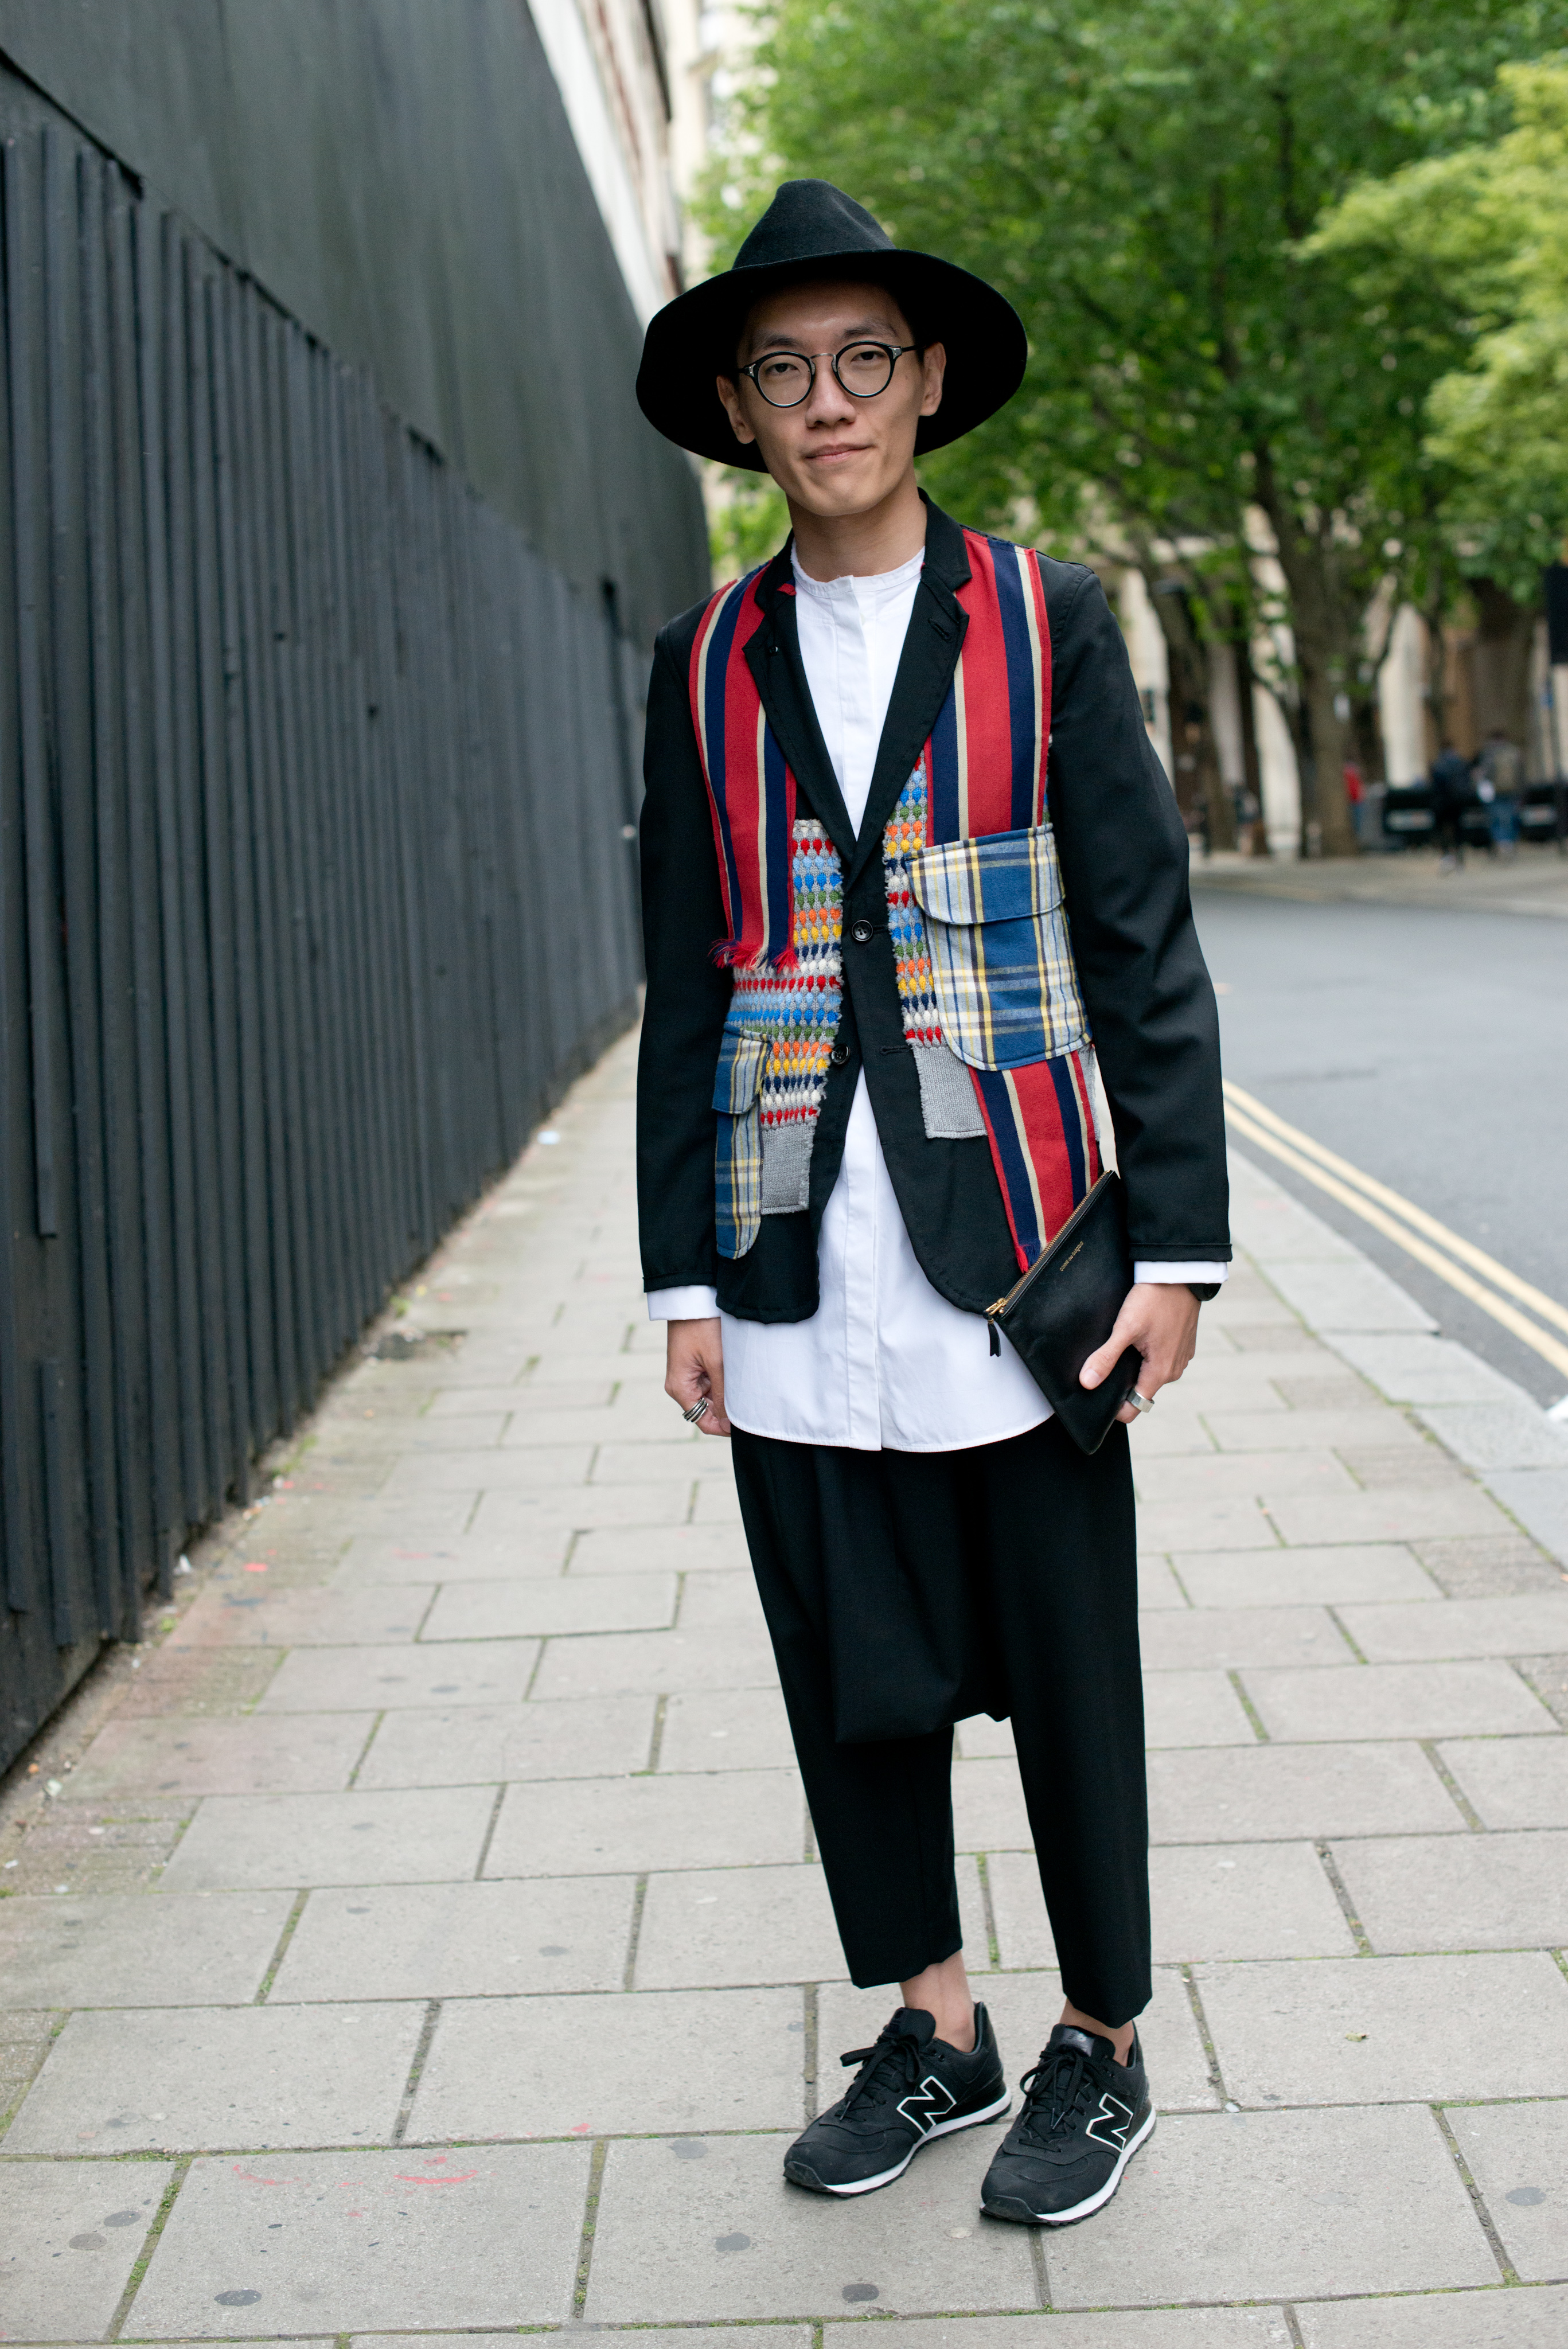 LONDON, ENGLAND - JUNE 16: Student Yongyang Hoon wears Comme Des Garcon trousers, coat and bag, New Balance trainers, Celine shirt and Reinhard Plank hat on day 2 of London Collections: Men on June 16, 2014 in London, England. (Photo by Kirstin Sinclair/Getty Images)